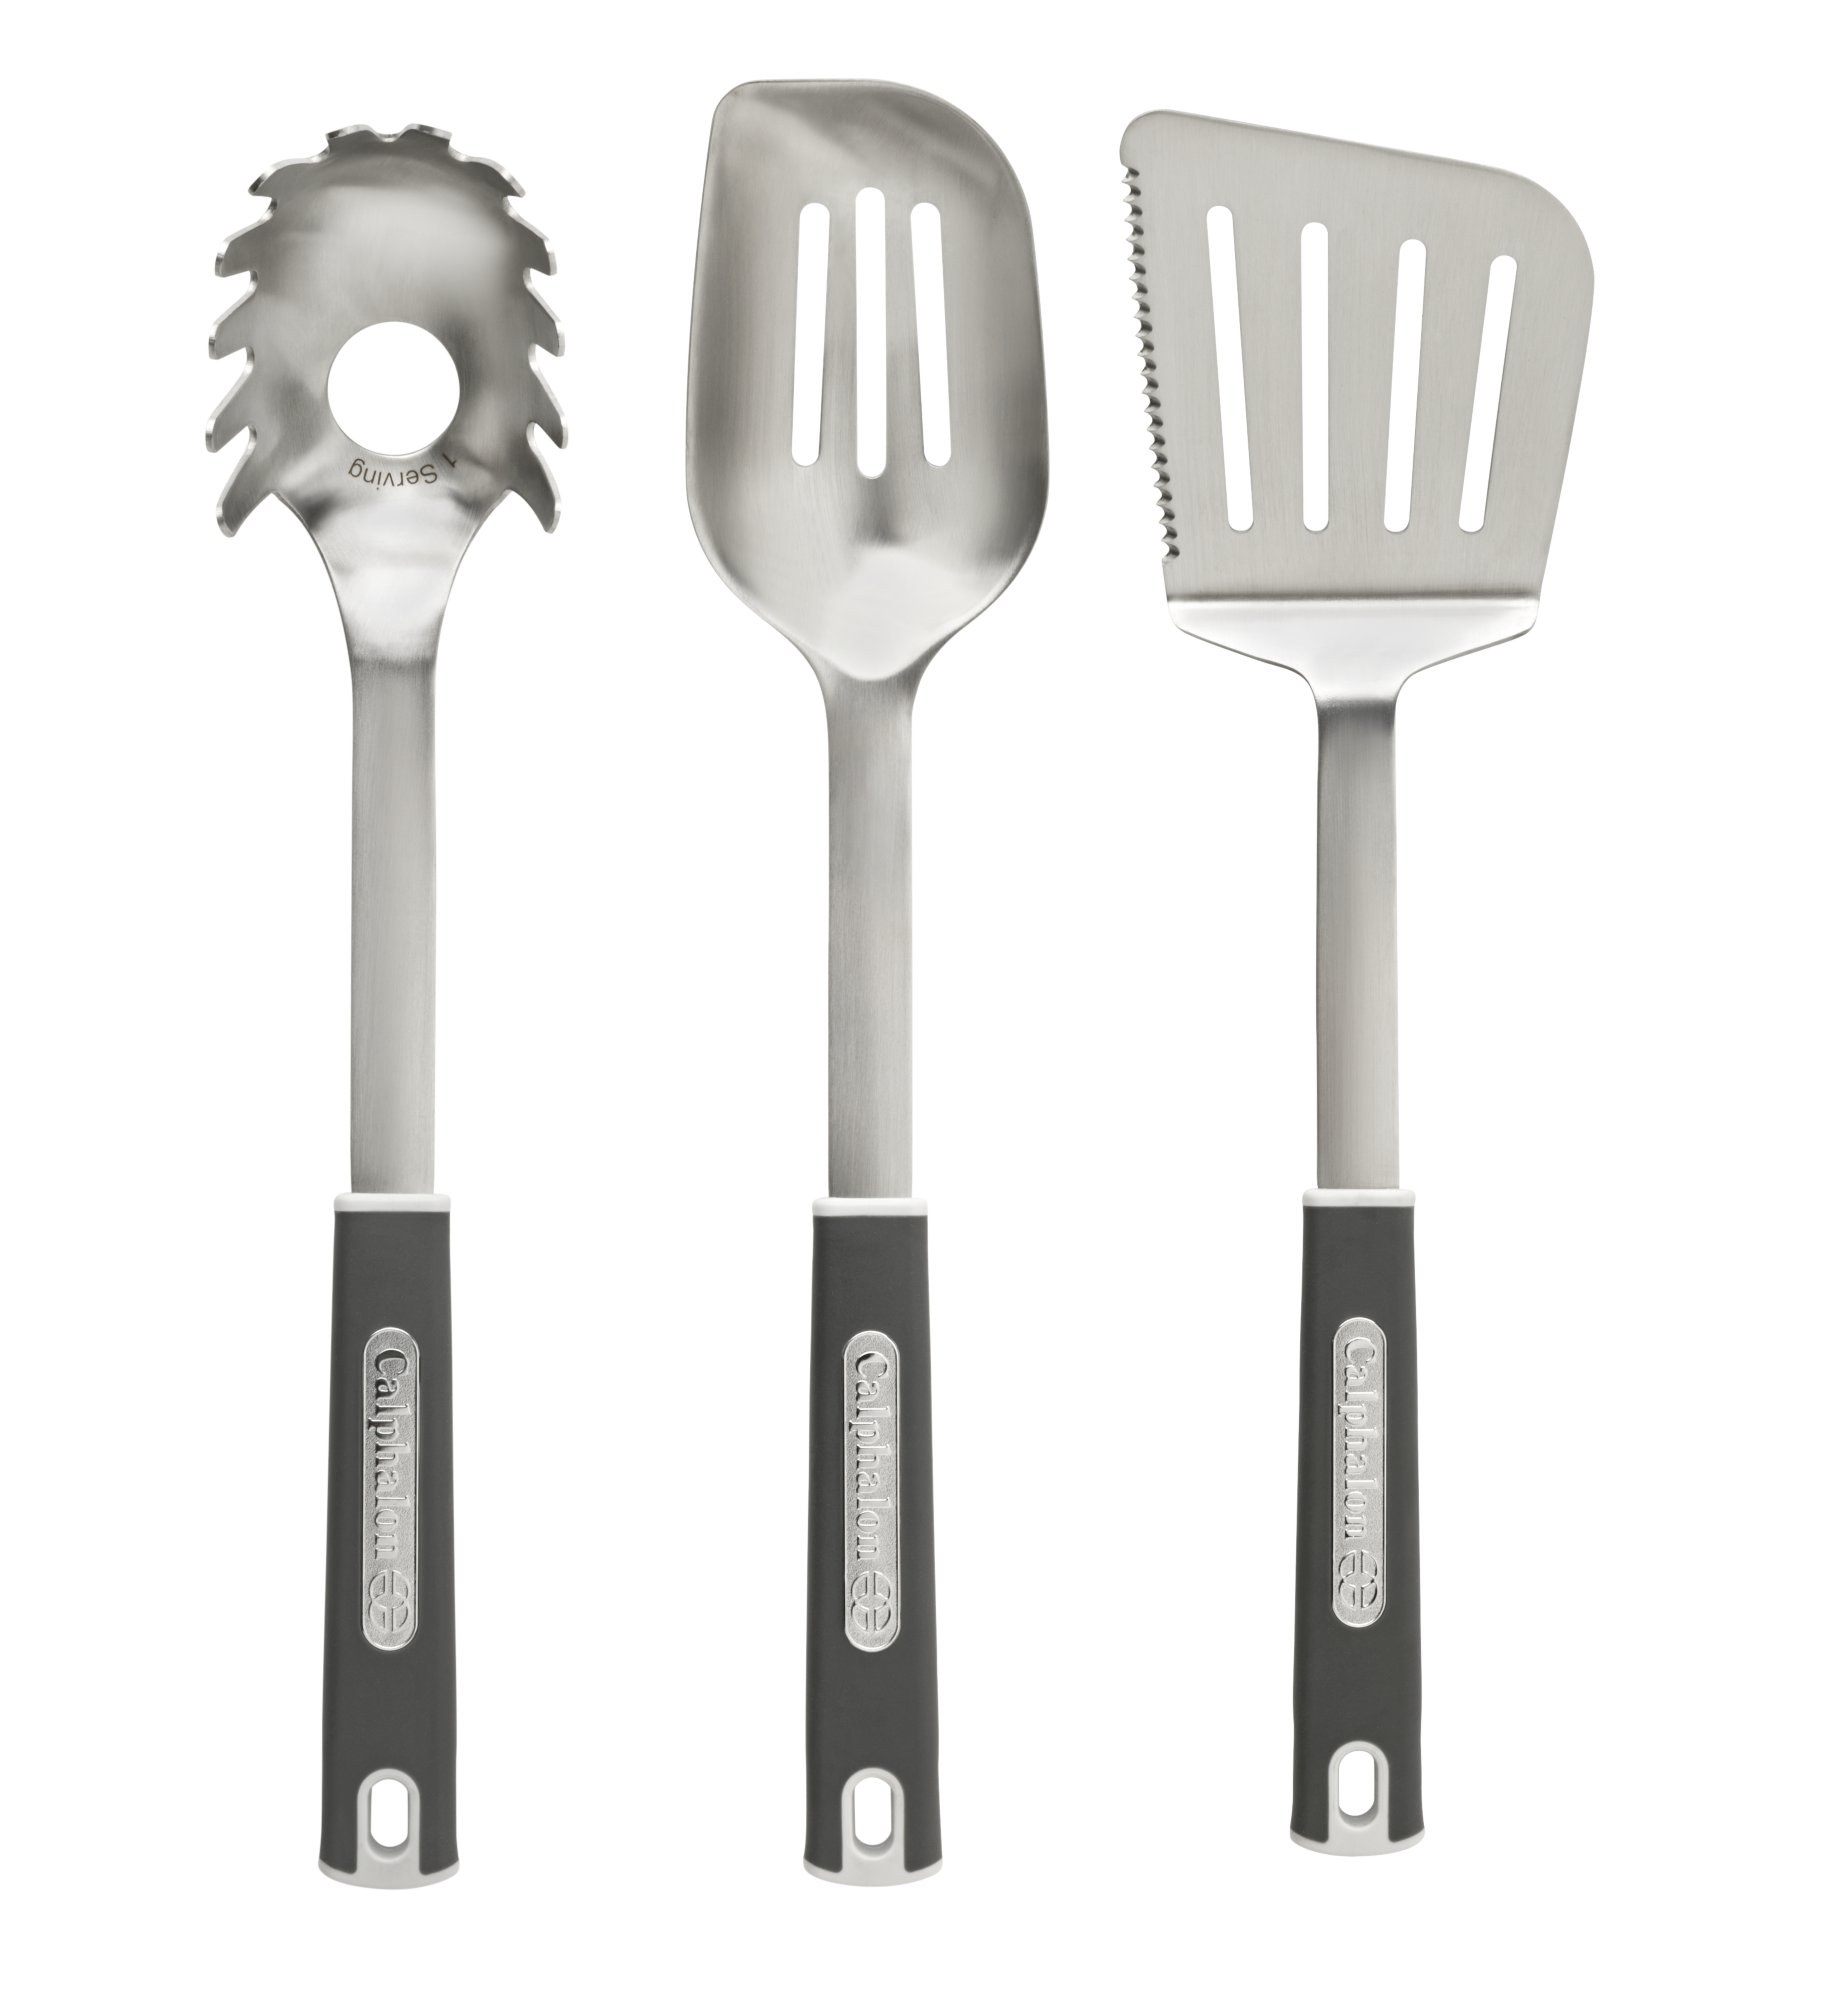 Calphalon Stainless Steel 3-pc. Utensil Set